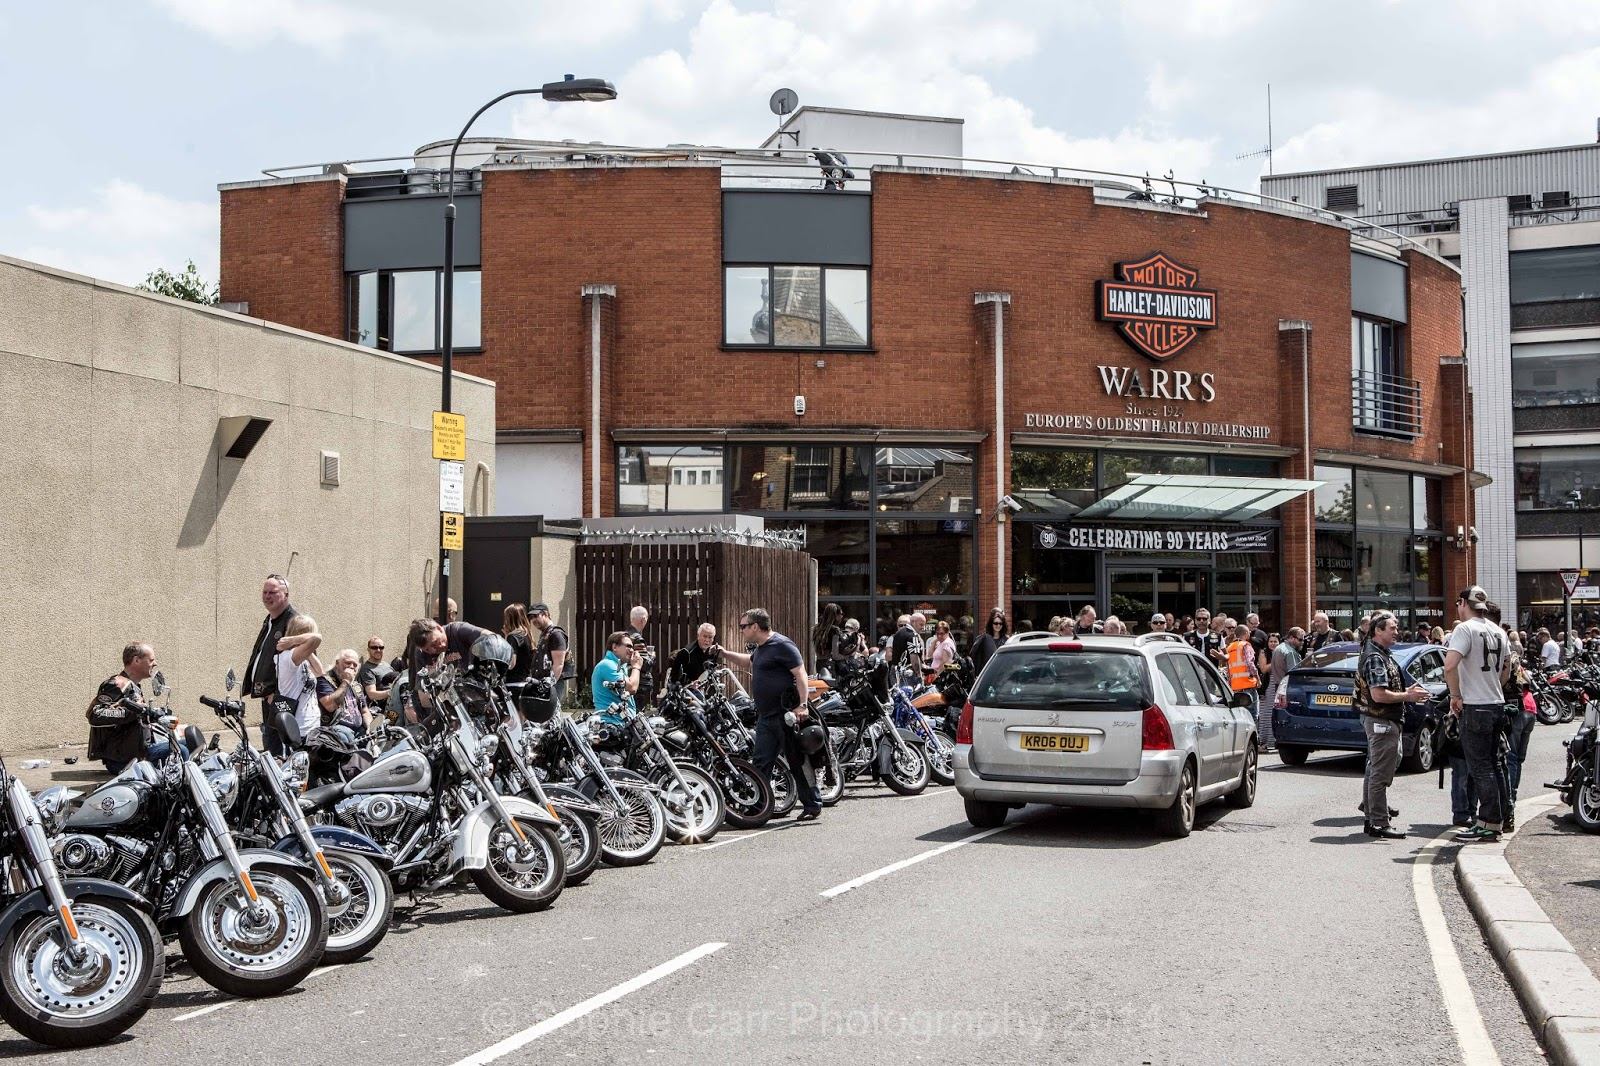 sophie carr's photo blog: celebrating 90 years at warr's harley